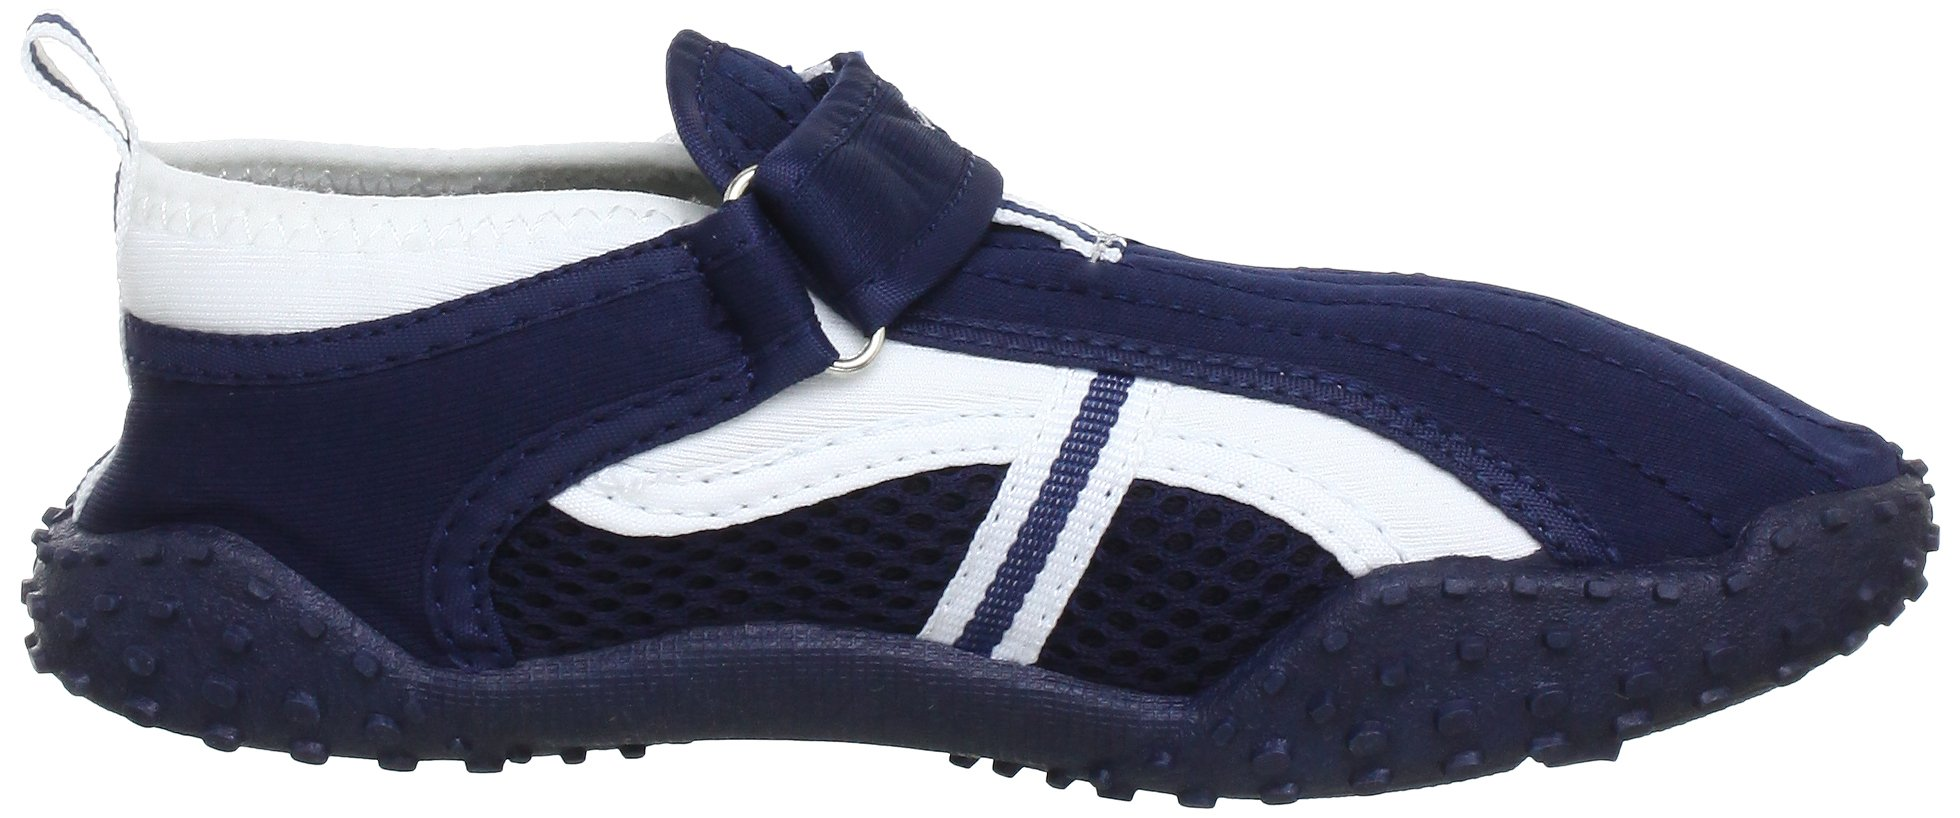 Playshoes Children's Aqua Beach Water Shoes (8.5 M US Toddler, Navy) by Playshoes (Image #7)